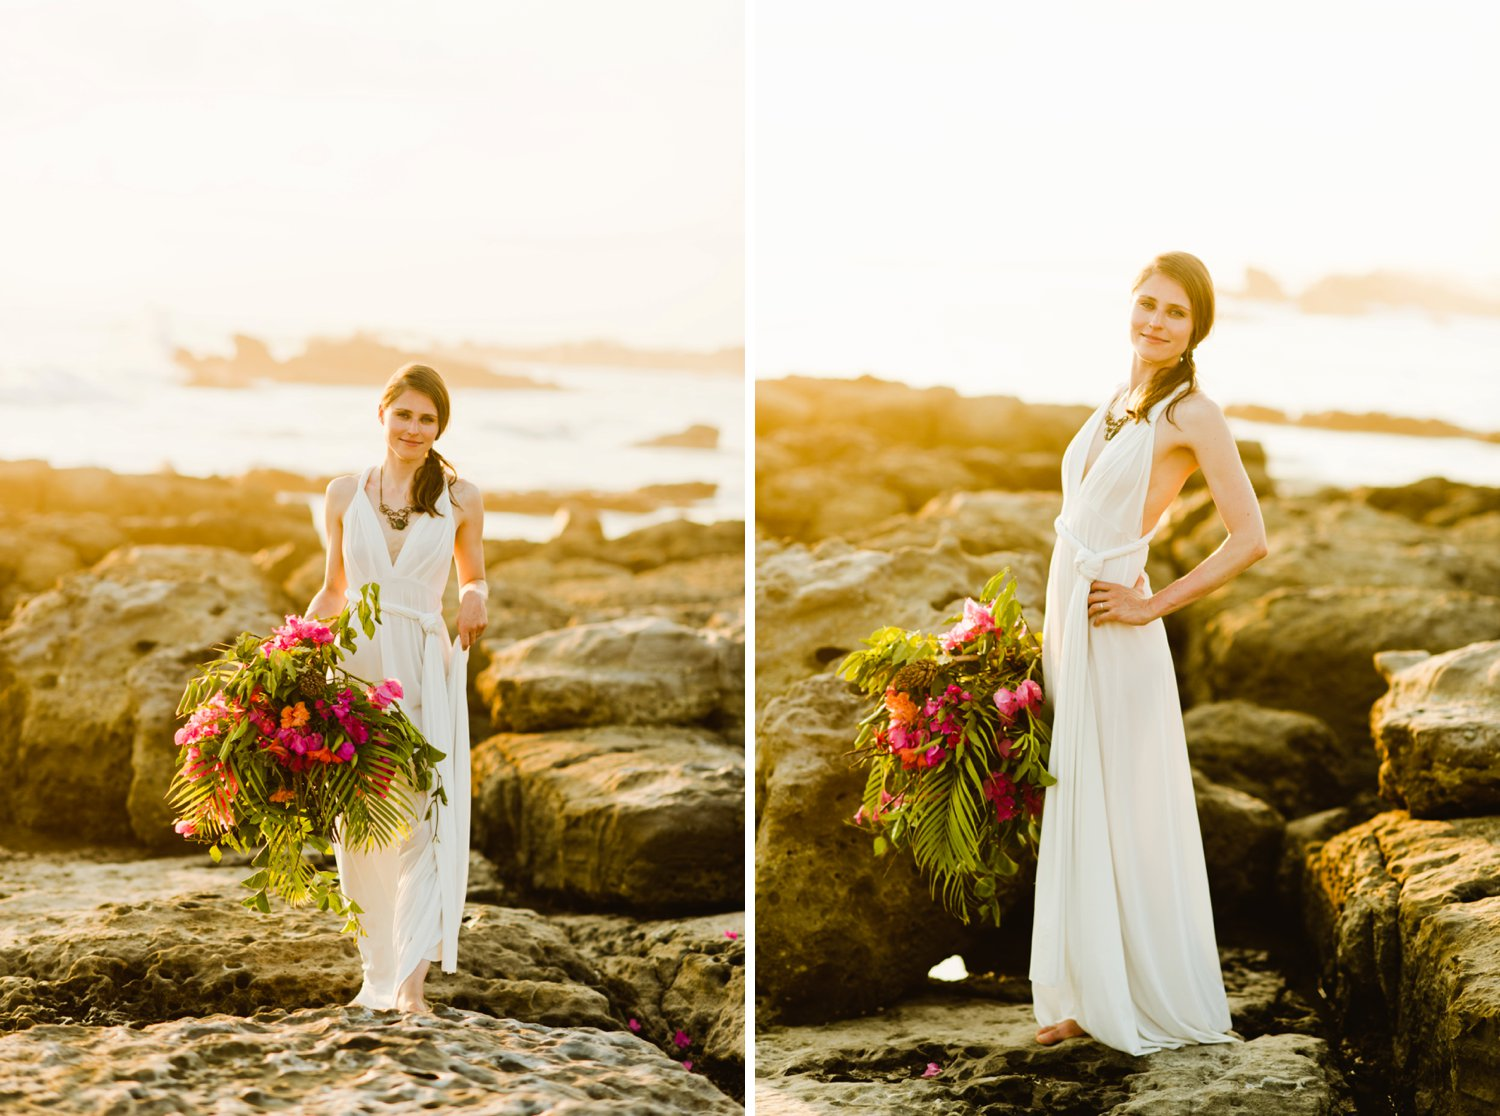 How gorgeous is this drapey wedding dress? I love a loose dress for a casual beach wedding!  Destination wedding photography by adventure elopement photographer, Maddie Mae.